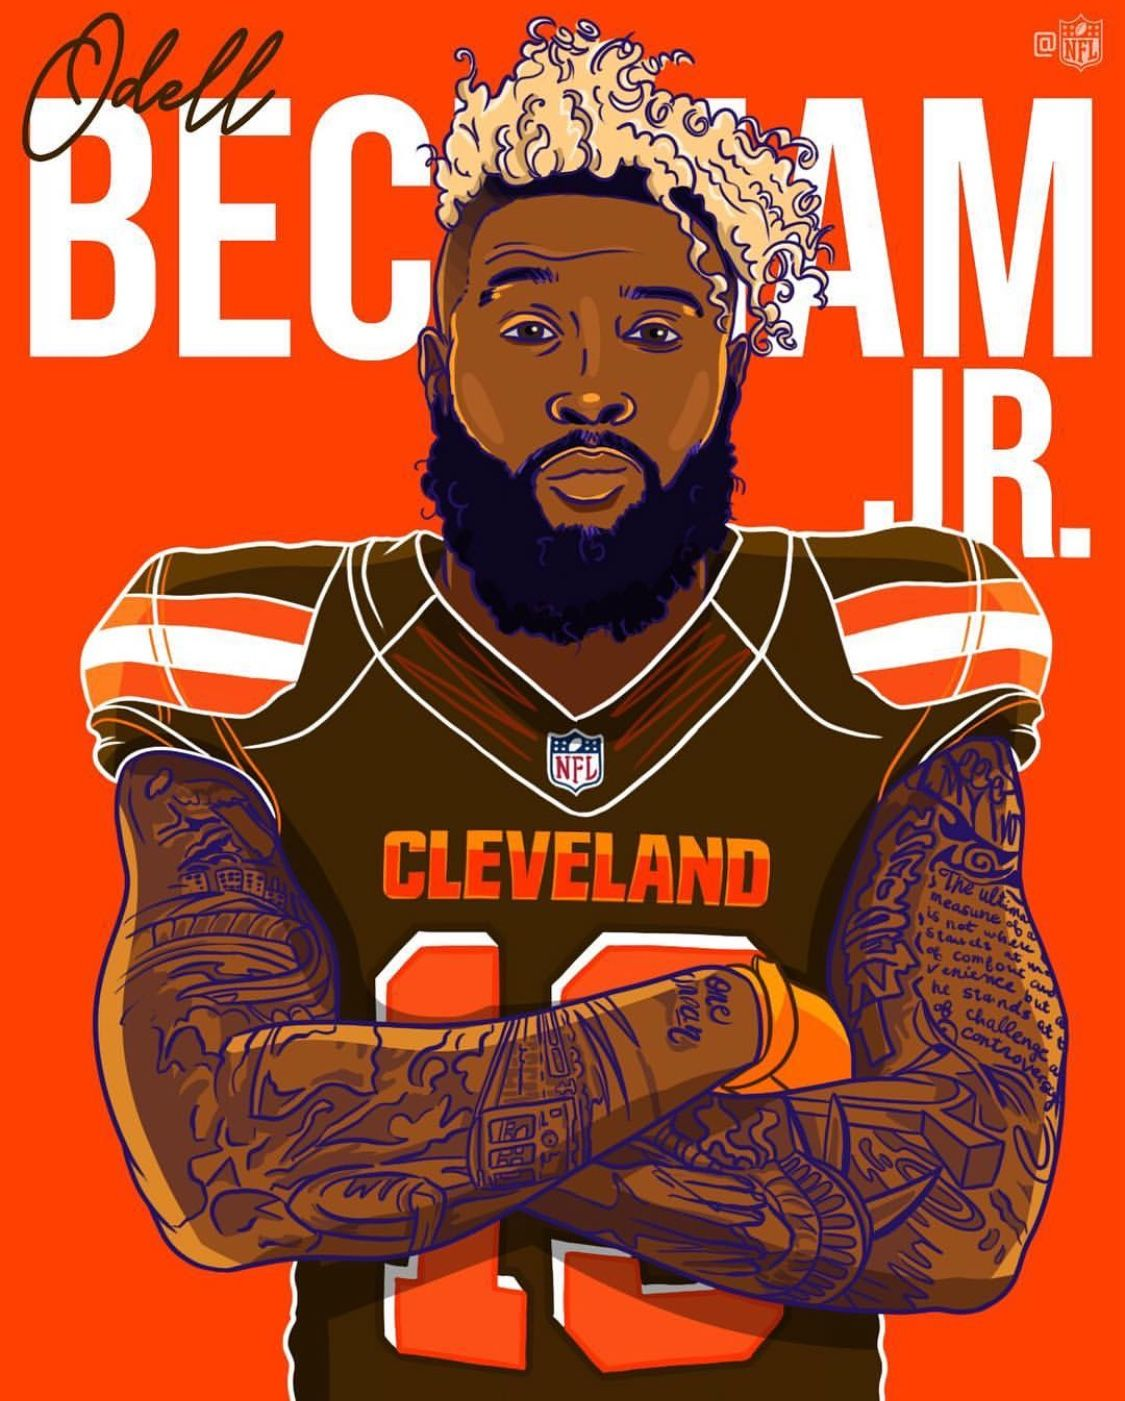 Are you serious!!?? Wow what a move for Cleveland. Odell